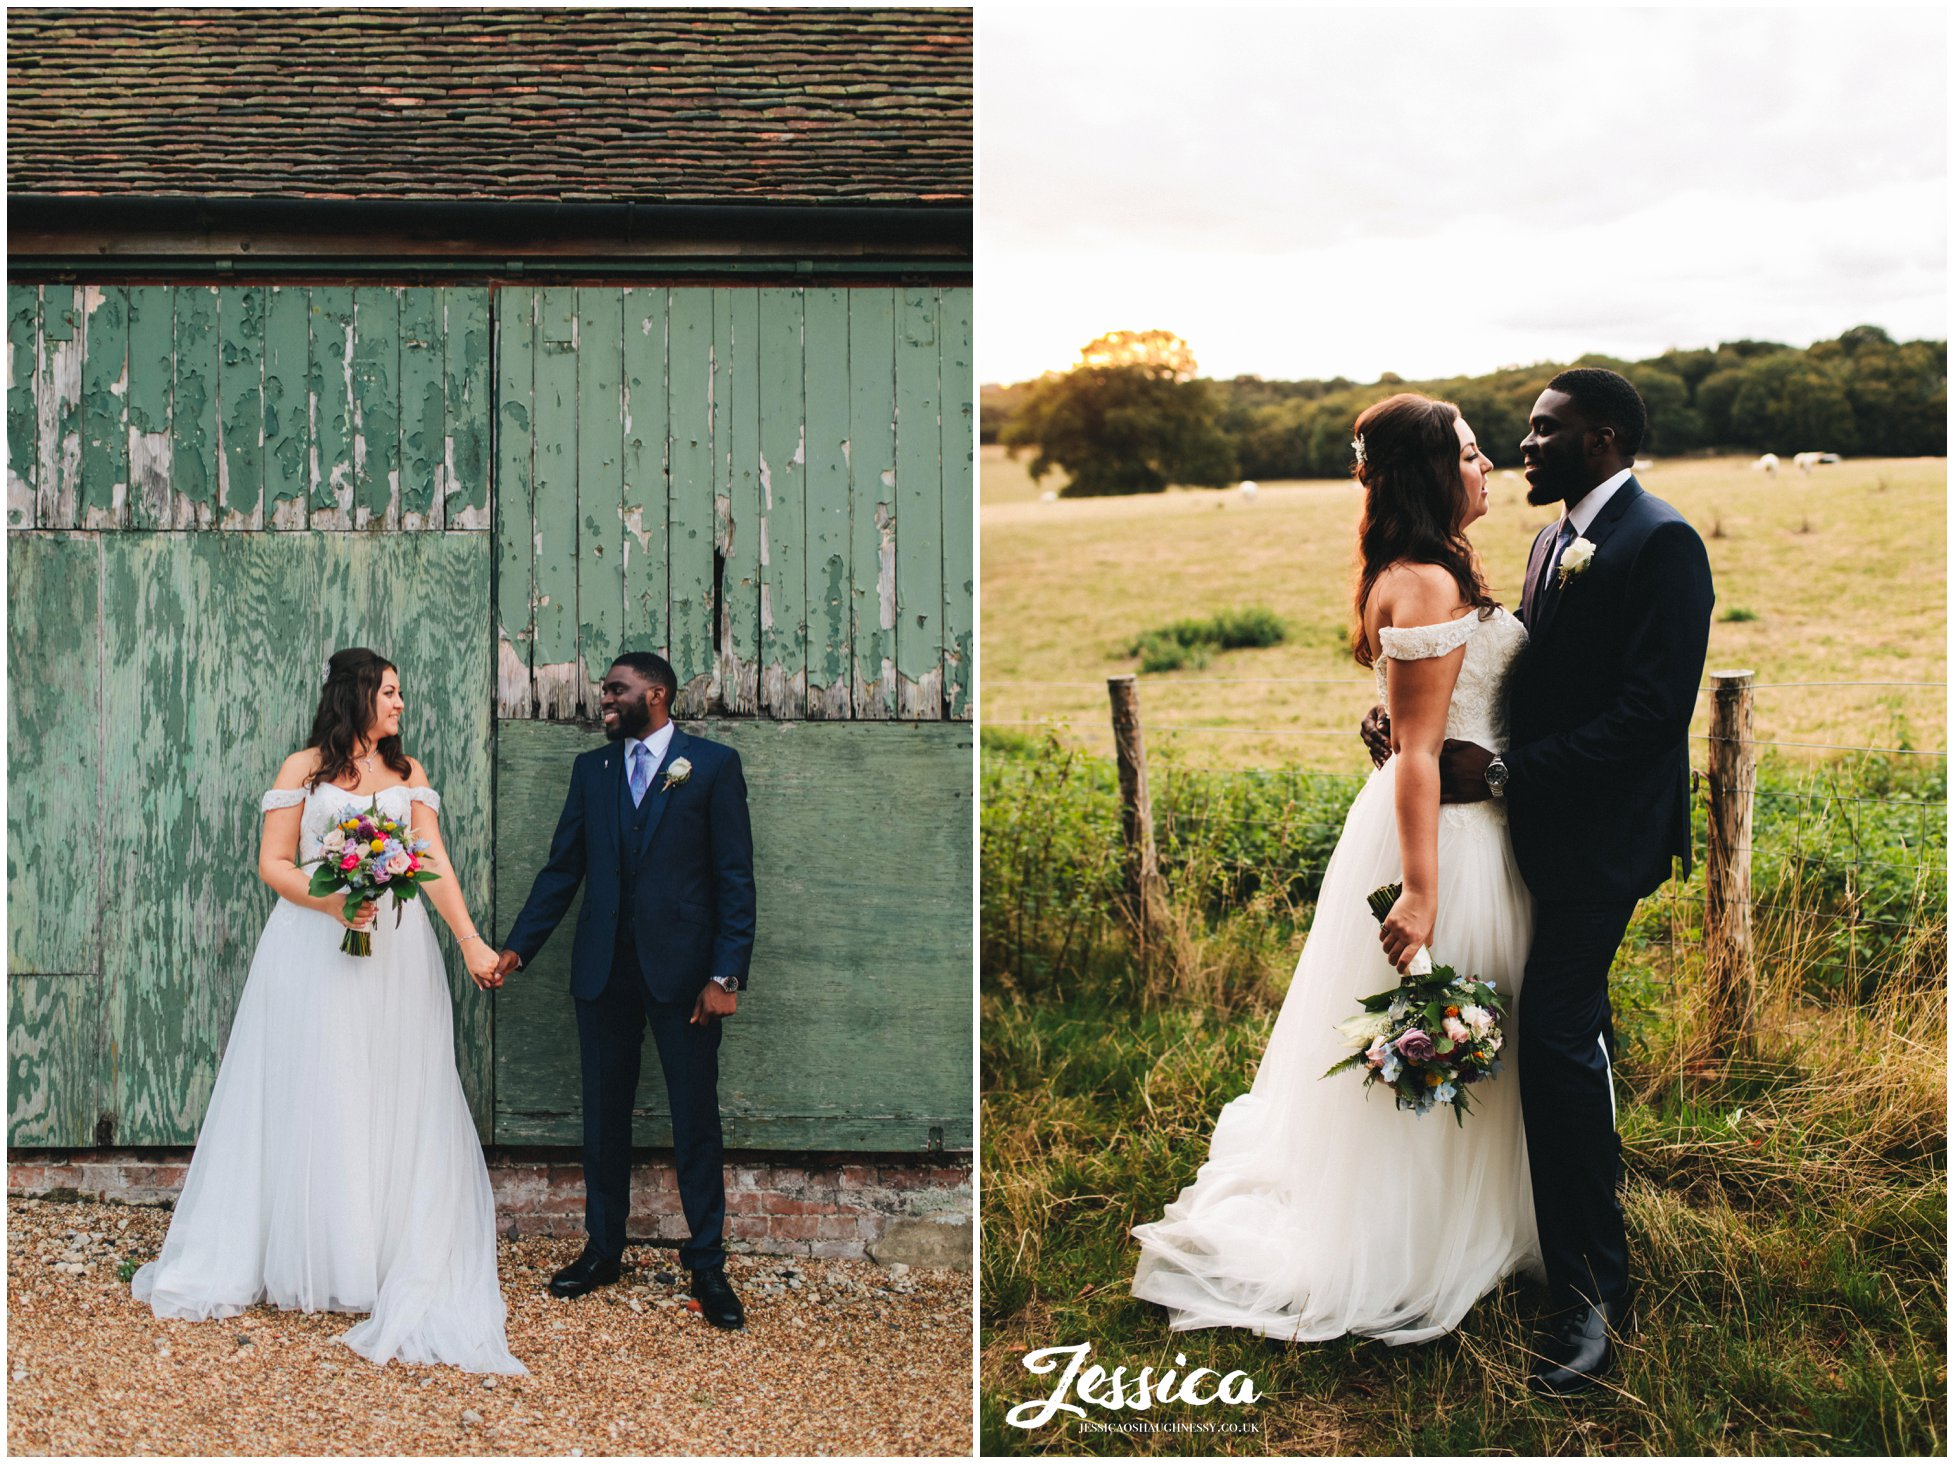 the couple stand against a rustic barn door